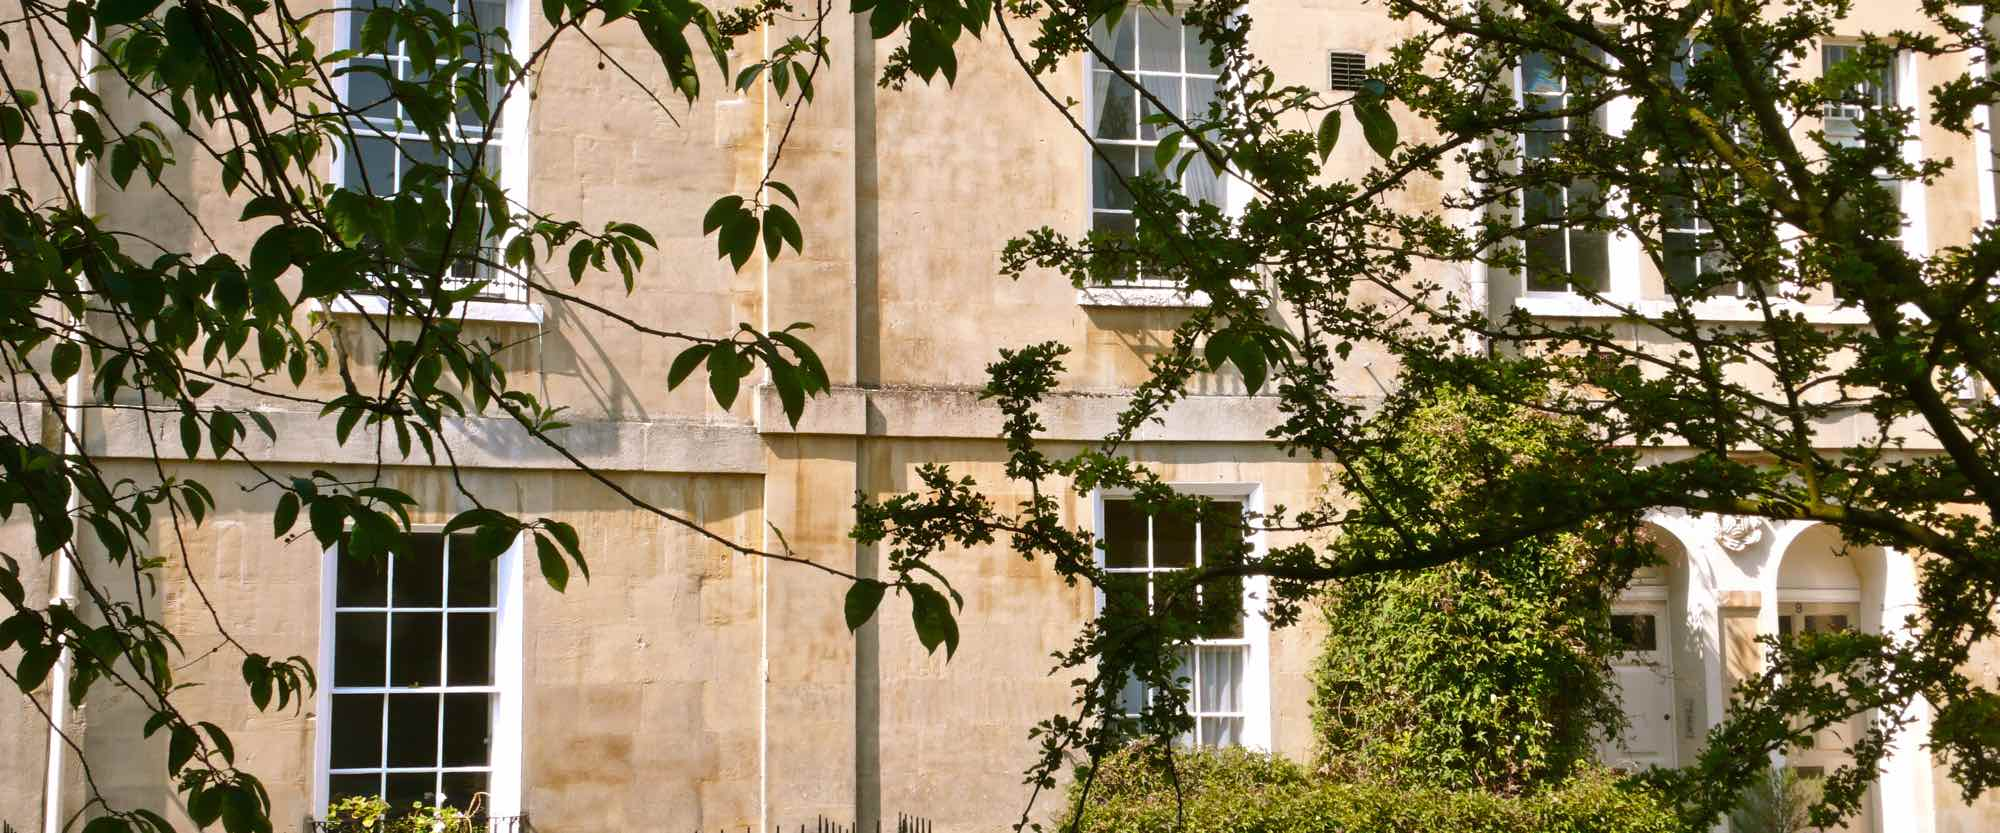 Student accommodation in Bath